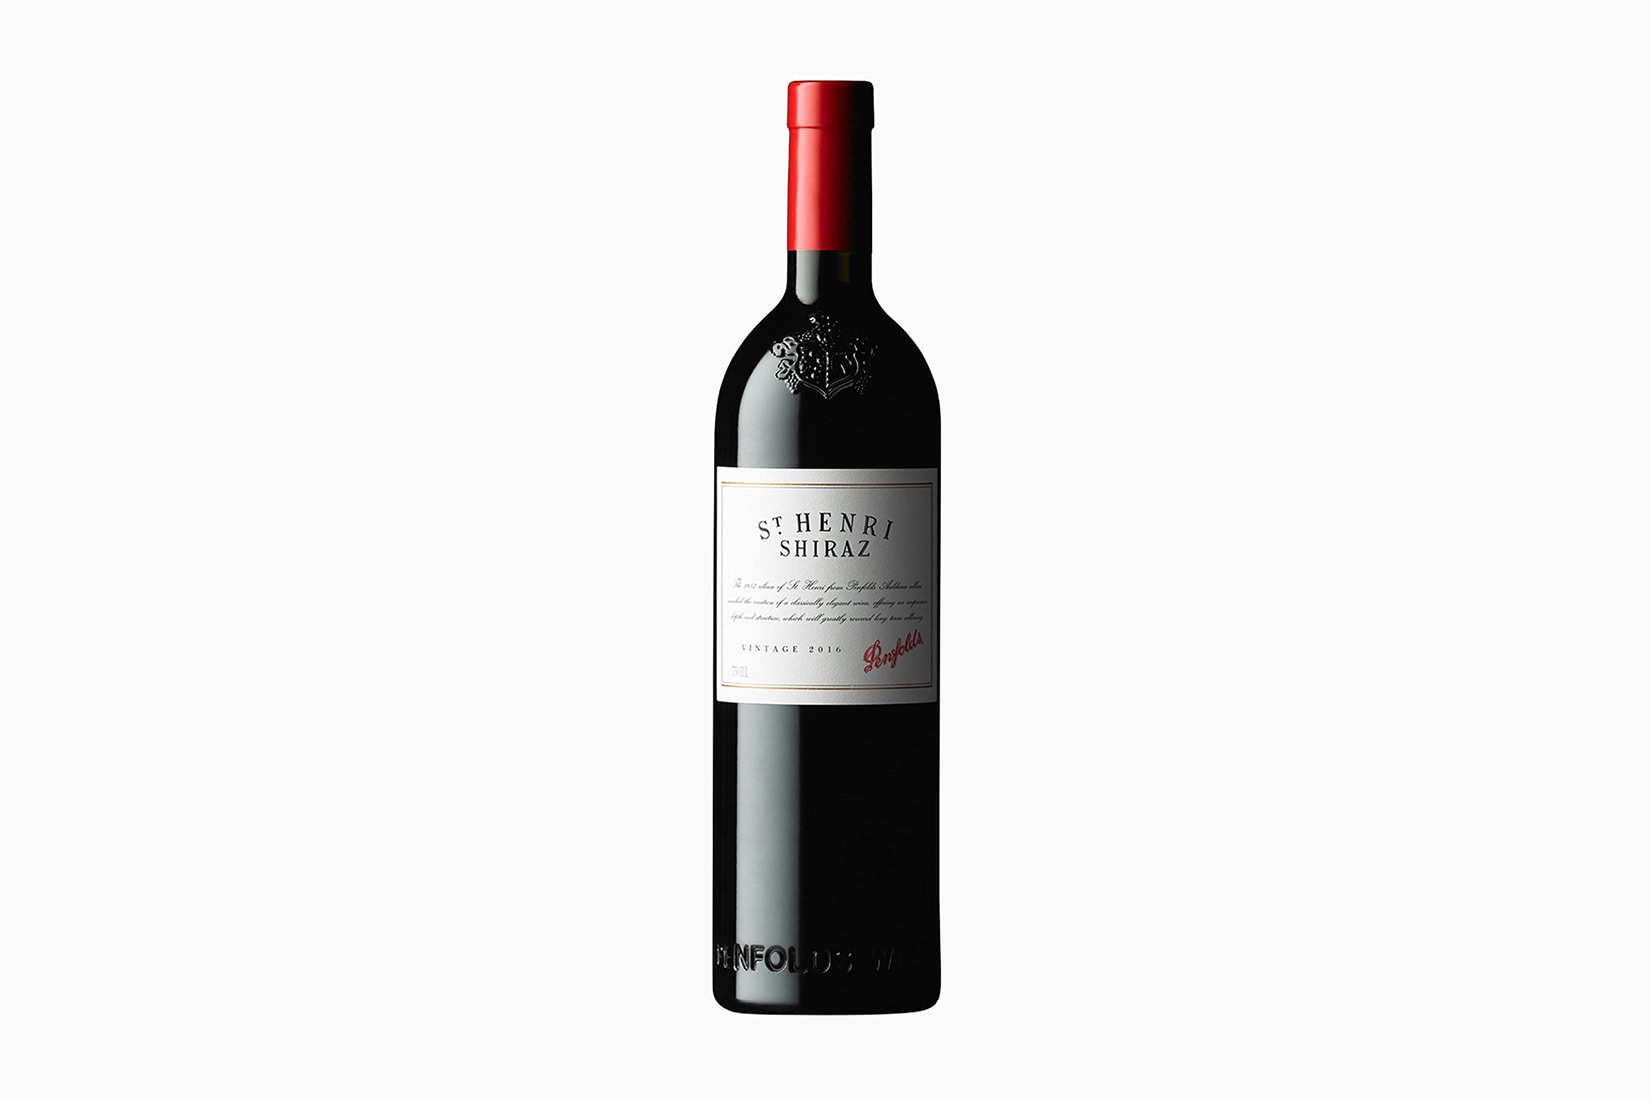 best wine penfolds st henri shiraz - Luxe Digital